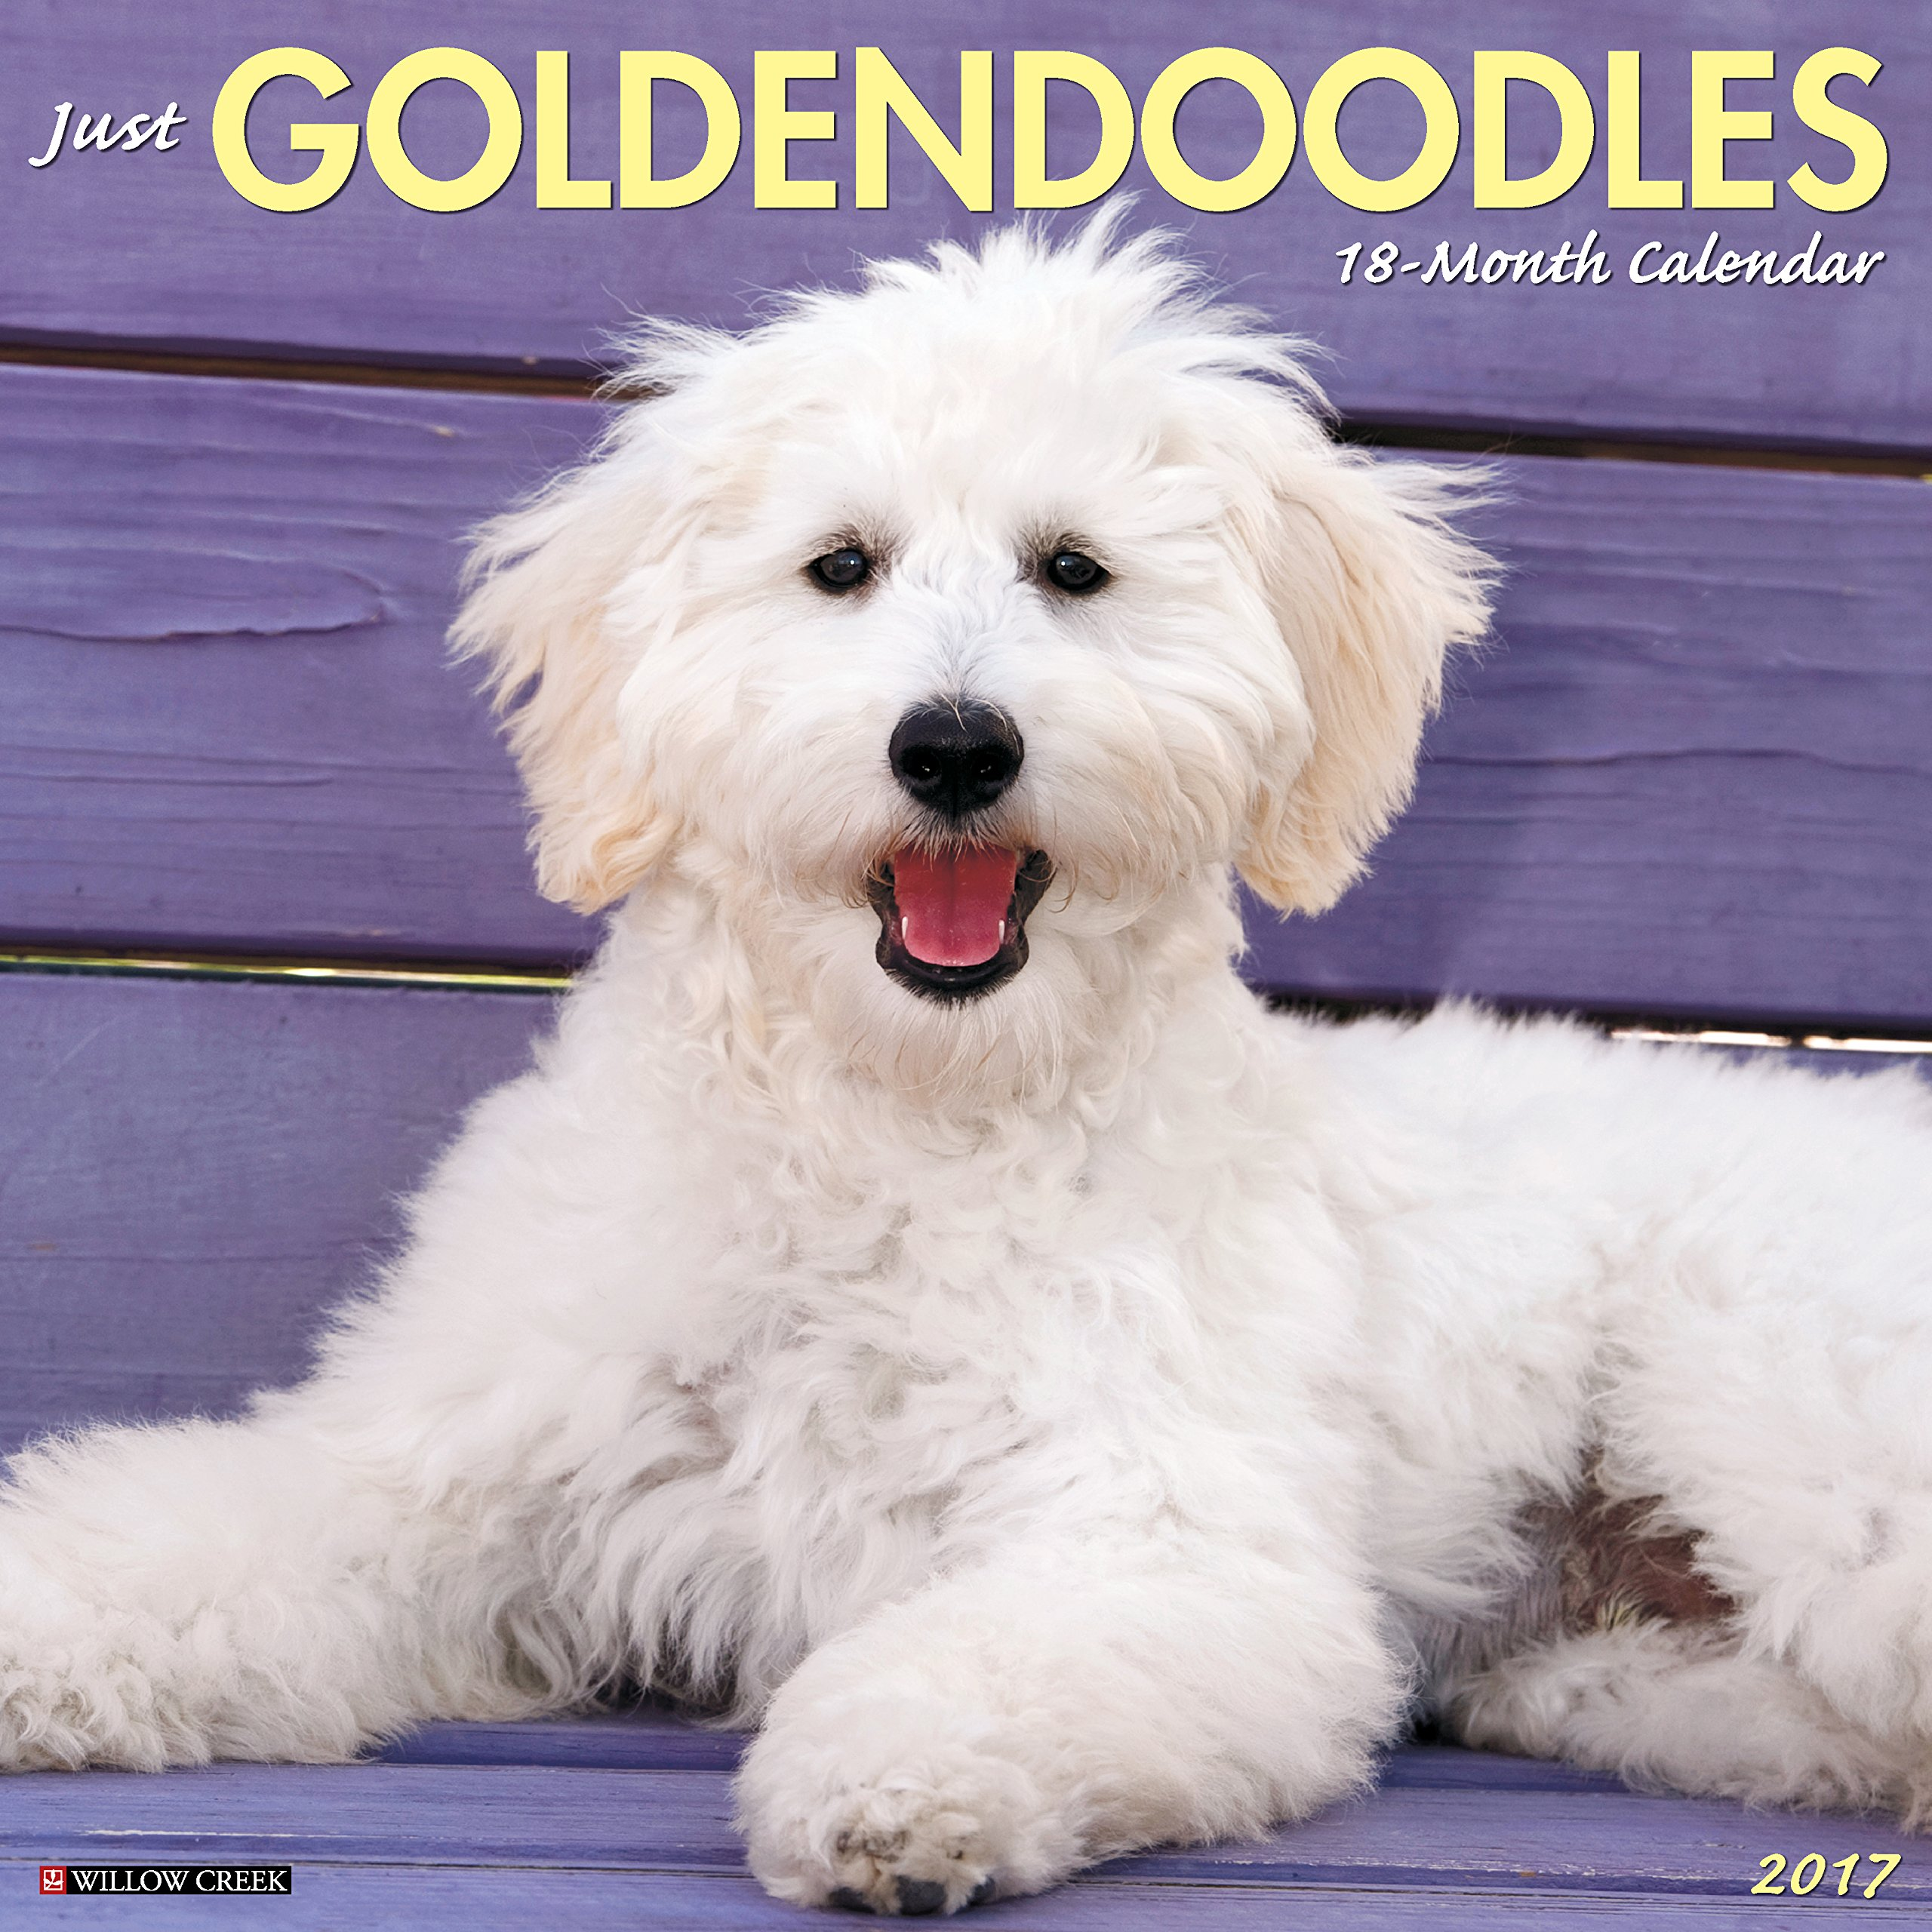 Just Goldendoodles 2017 Wall Calendar (Dog Breed Calendars)